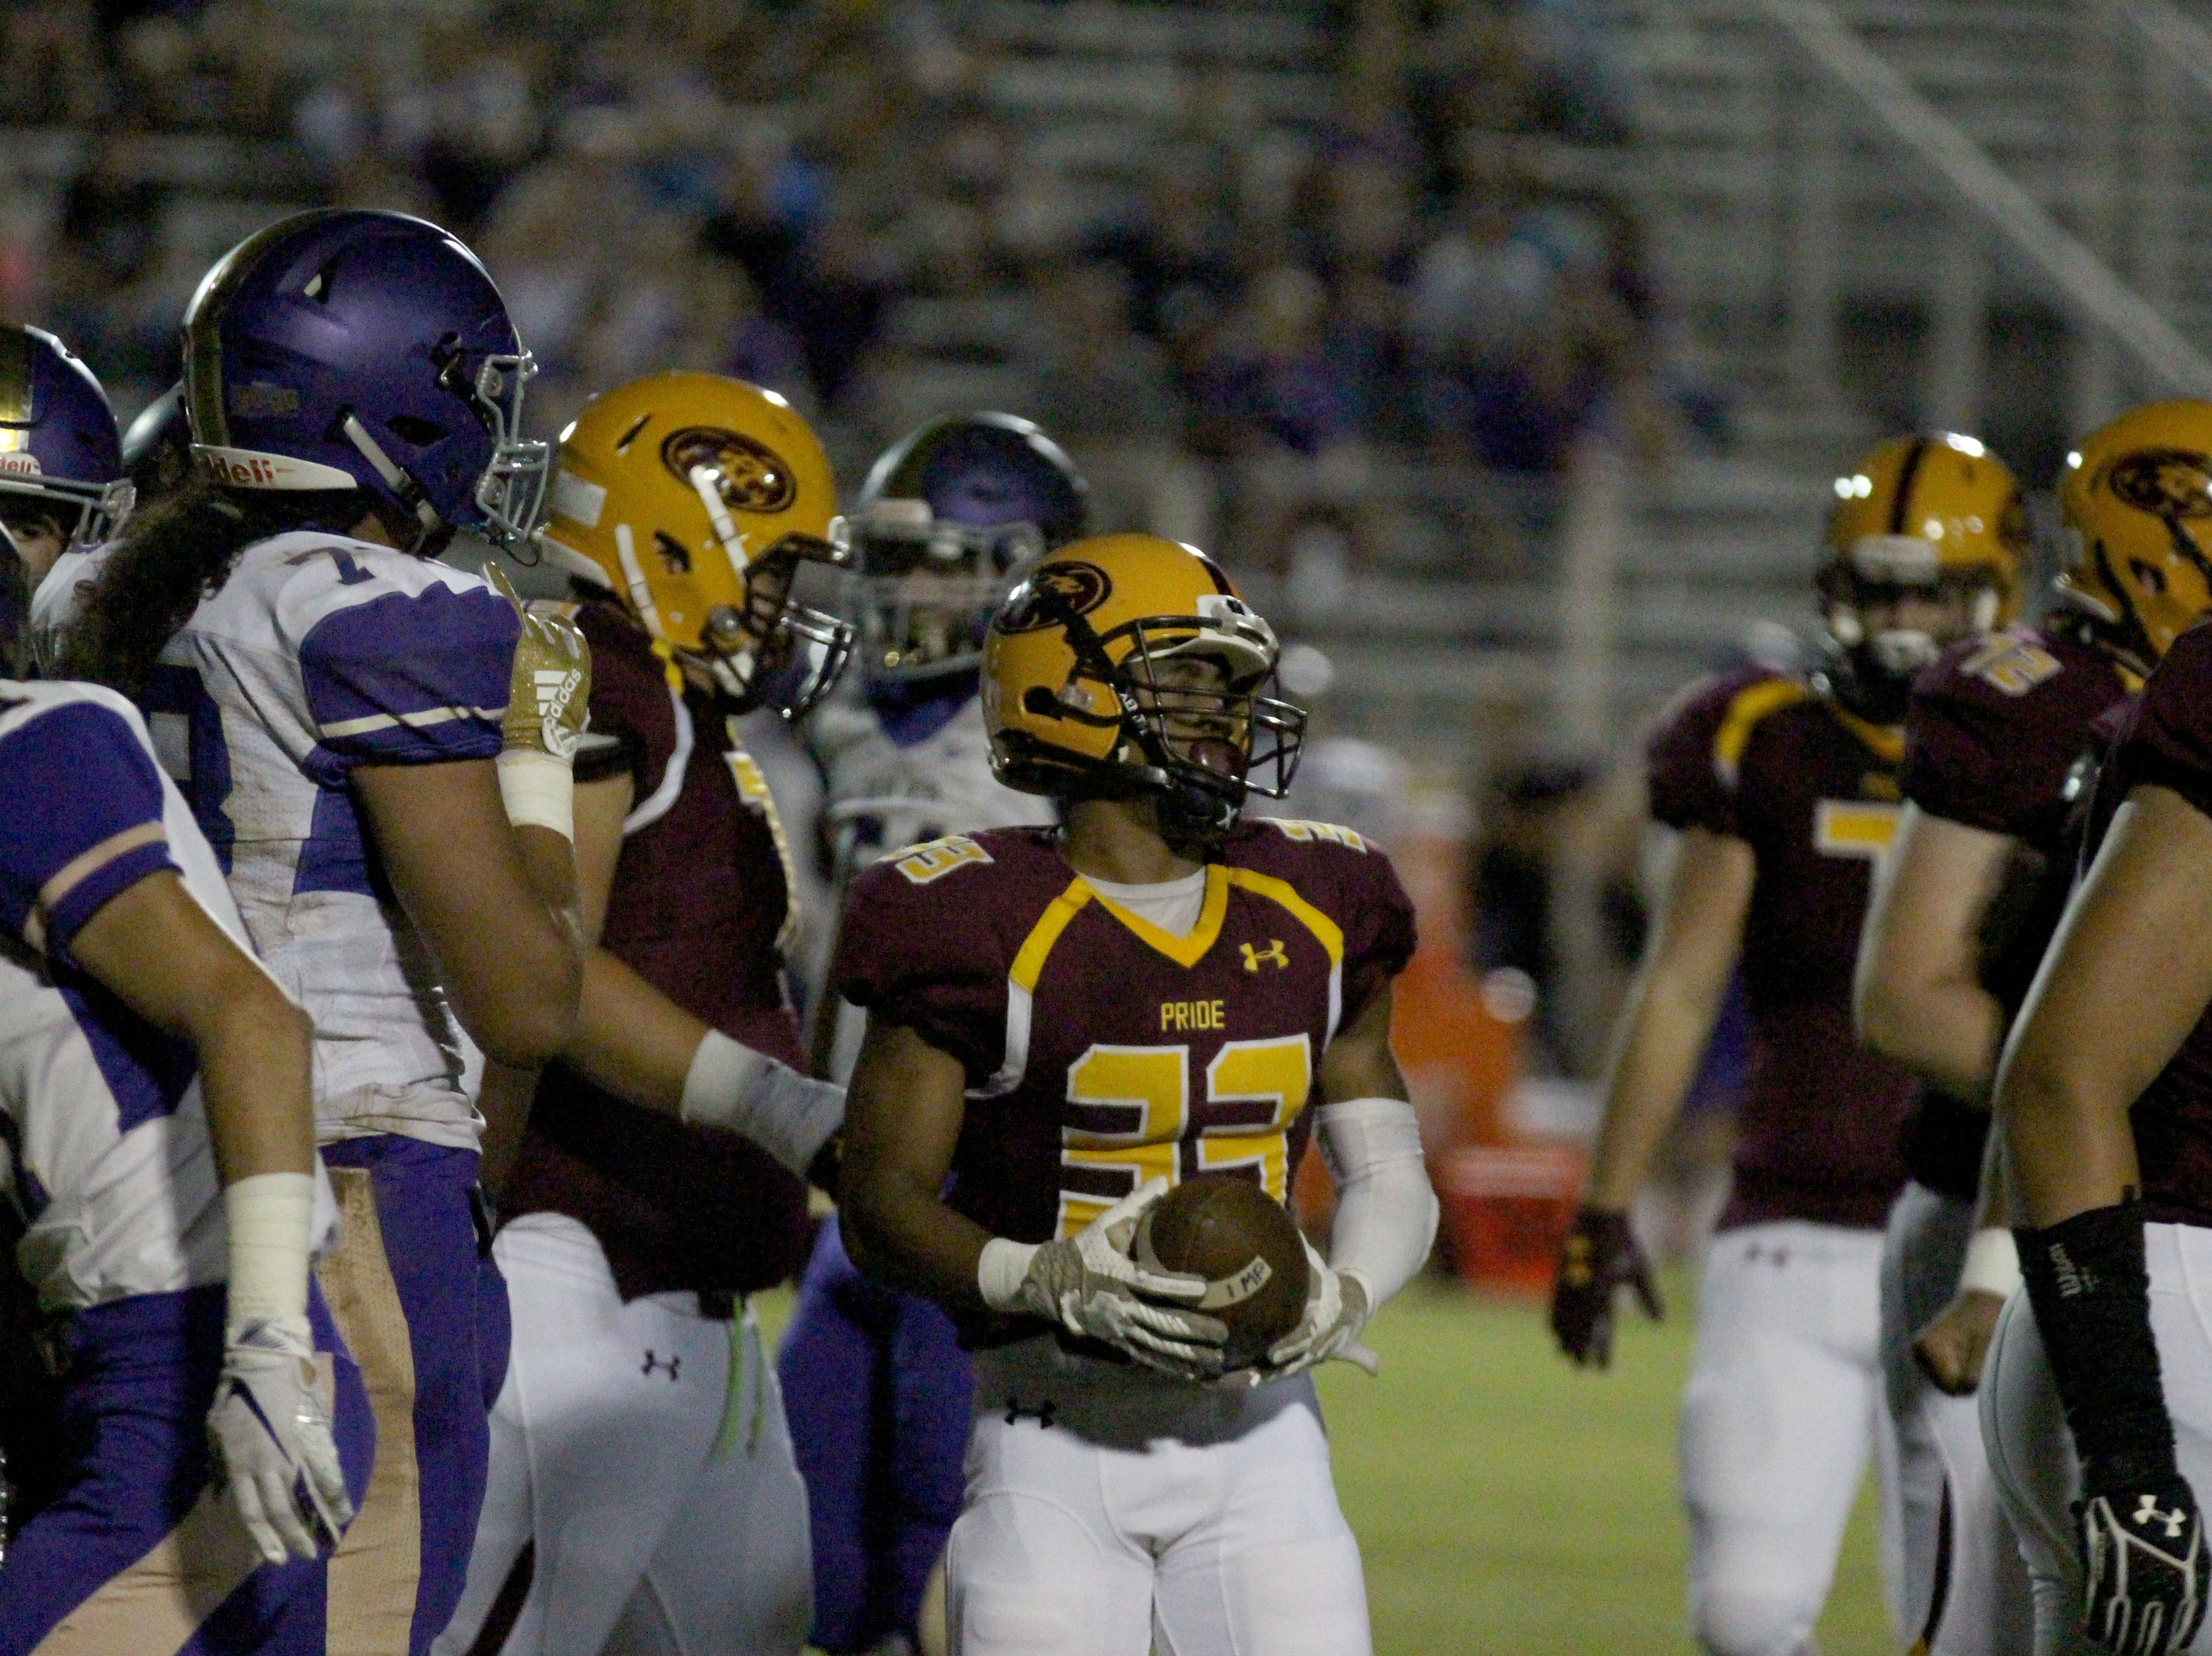 Mountain Pointe's Jakim McKinney holds the ball inbetween a play against Queen Creek on Friday night at Mountain Pointe High School on Sept. 21, 2018.